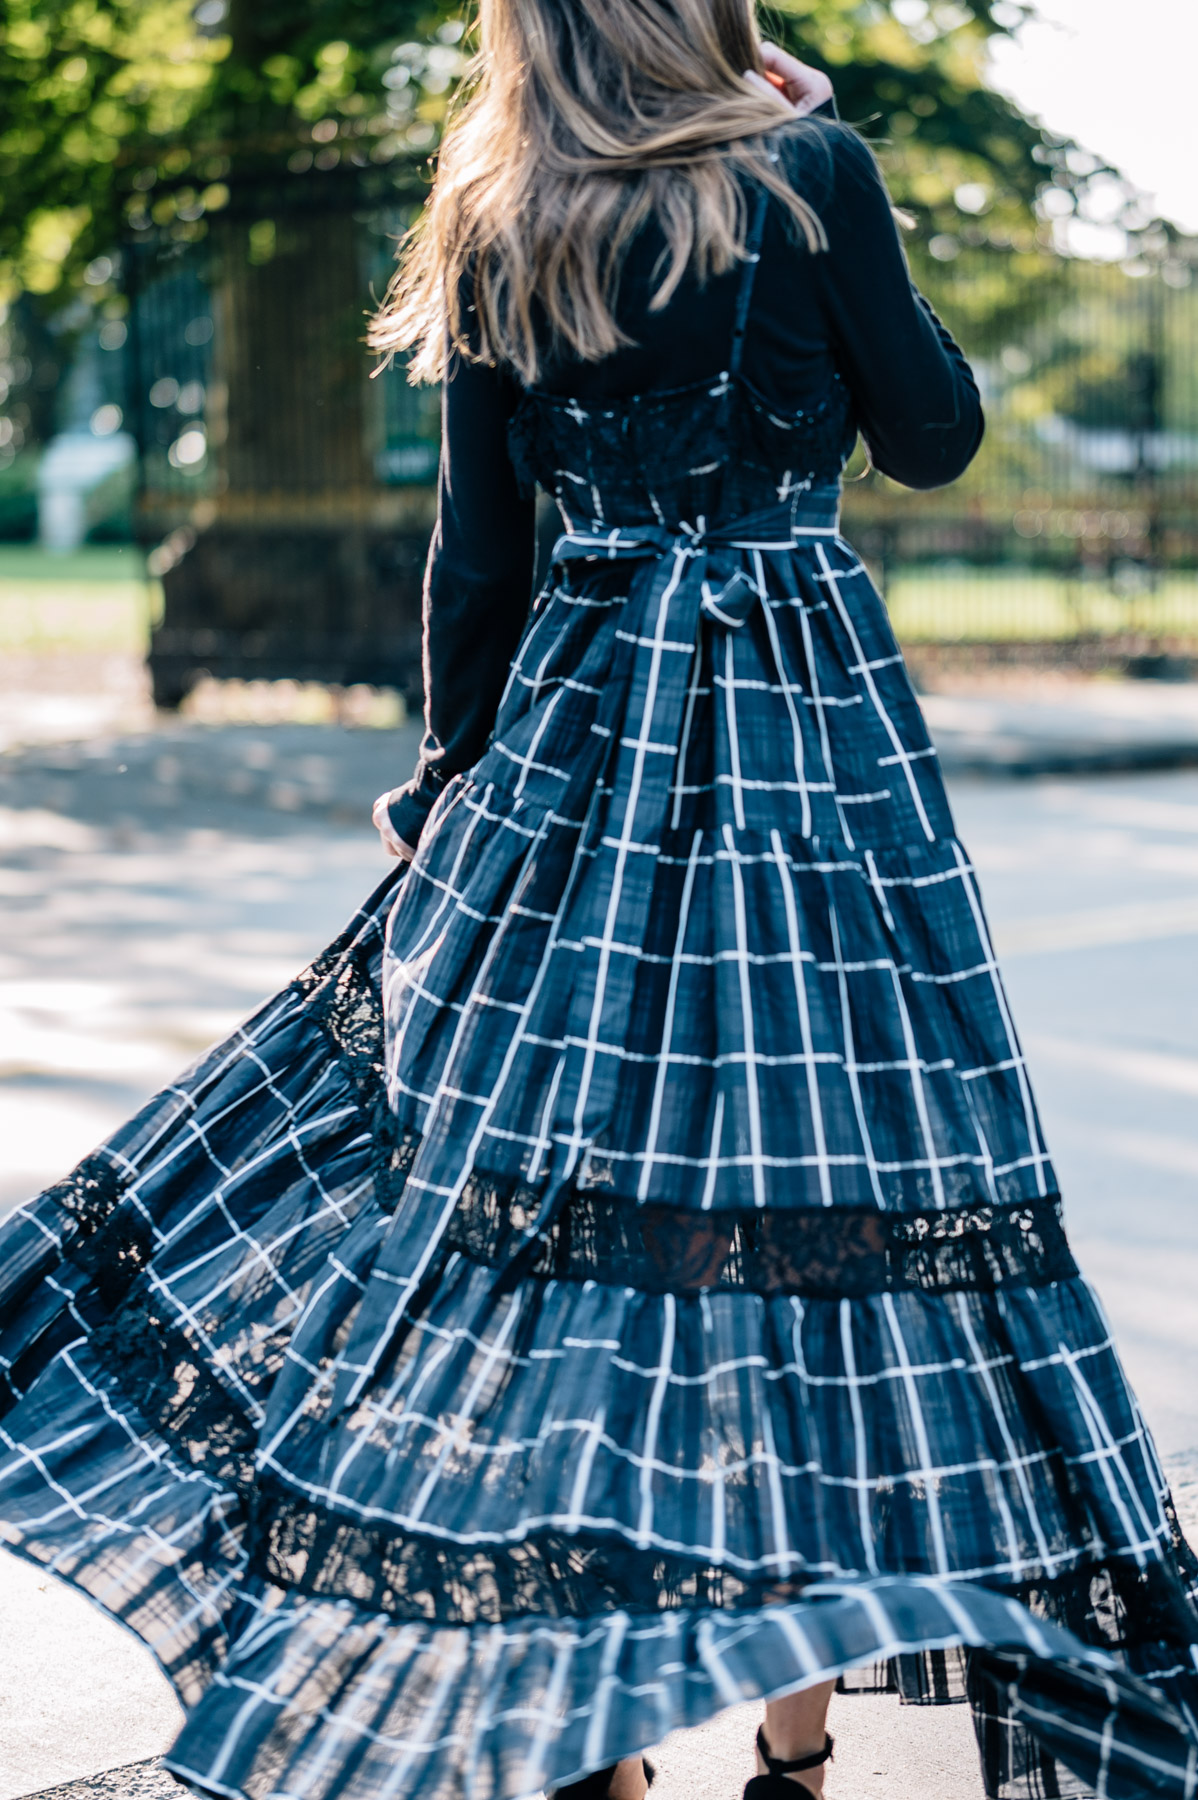 The Vetiver communication breakdown maxi dress from Shopbop on Jess Kirby for fall wedding style